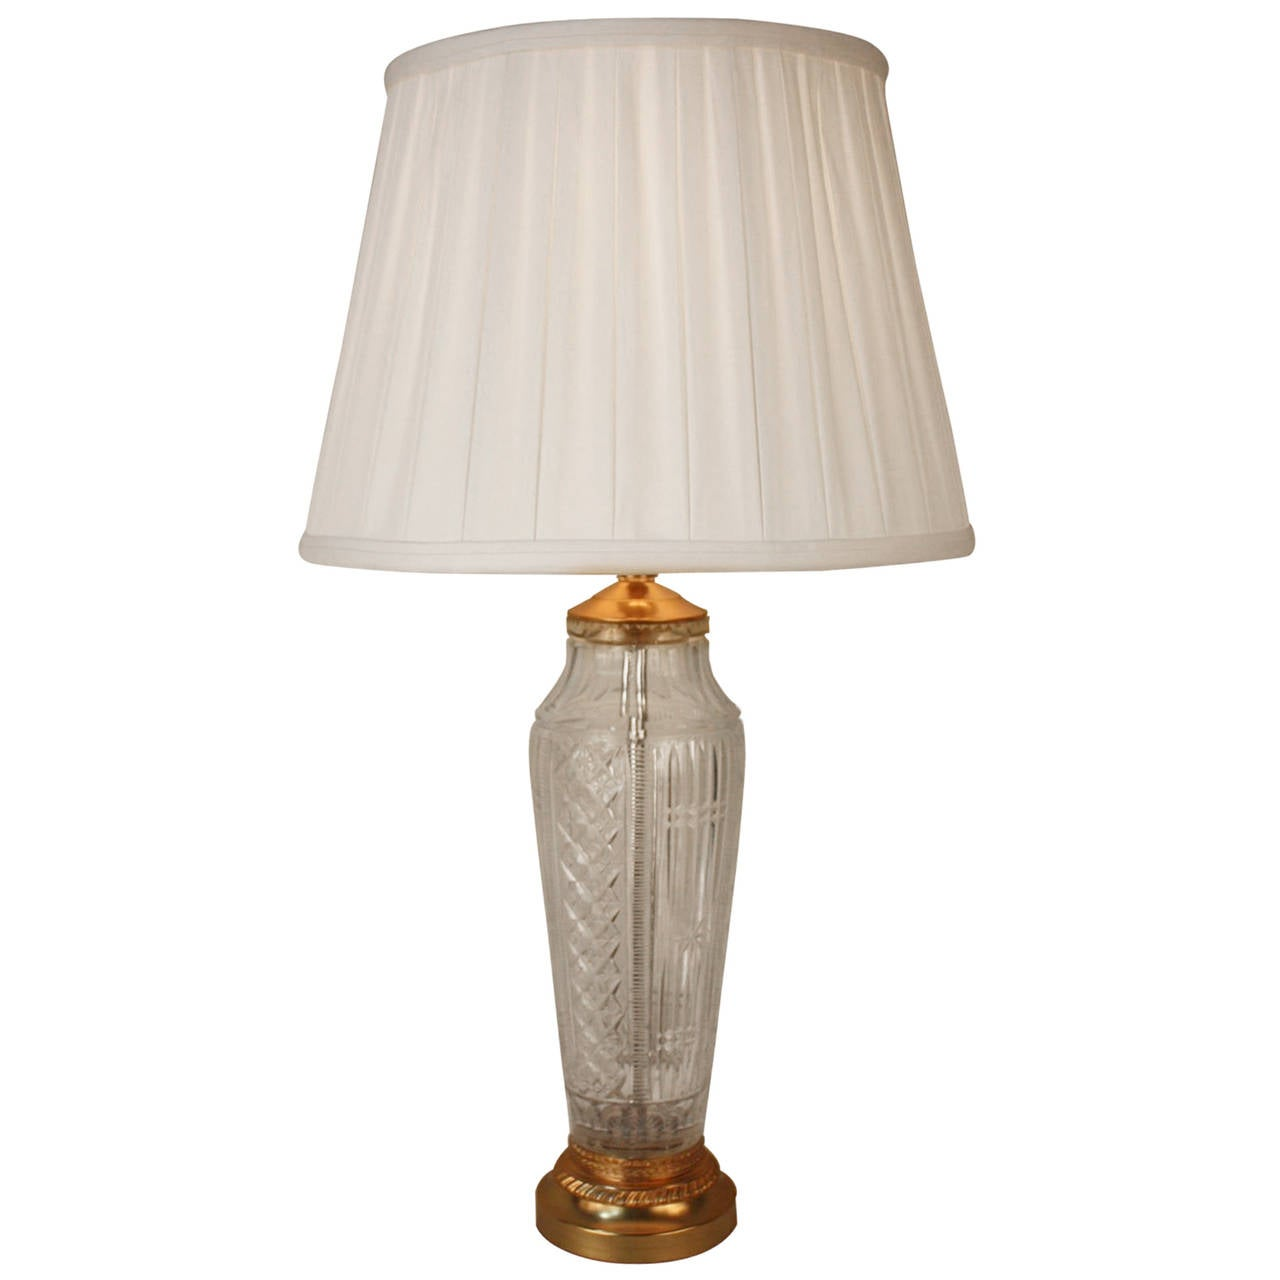 hand cut french crystal bronze base table lamp for sale at 1stdibs. Black Bedroom Furniture Sets. Home Design Ideas